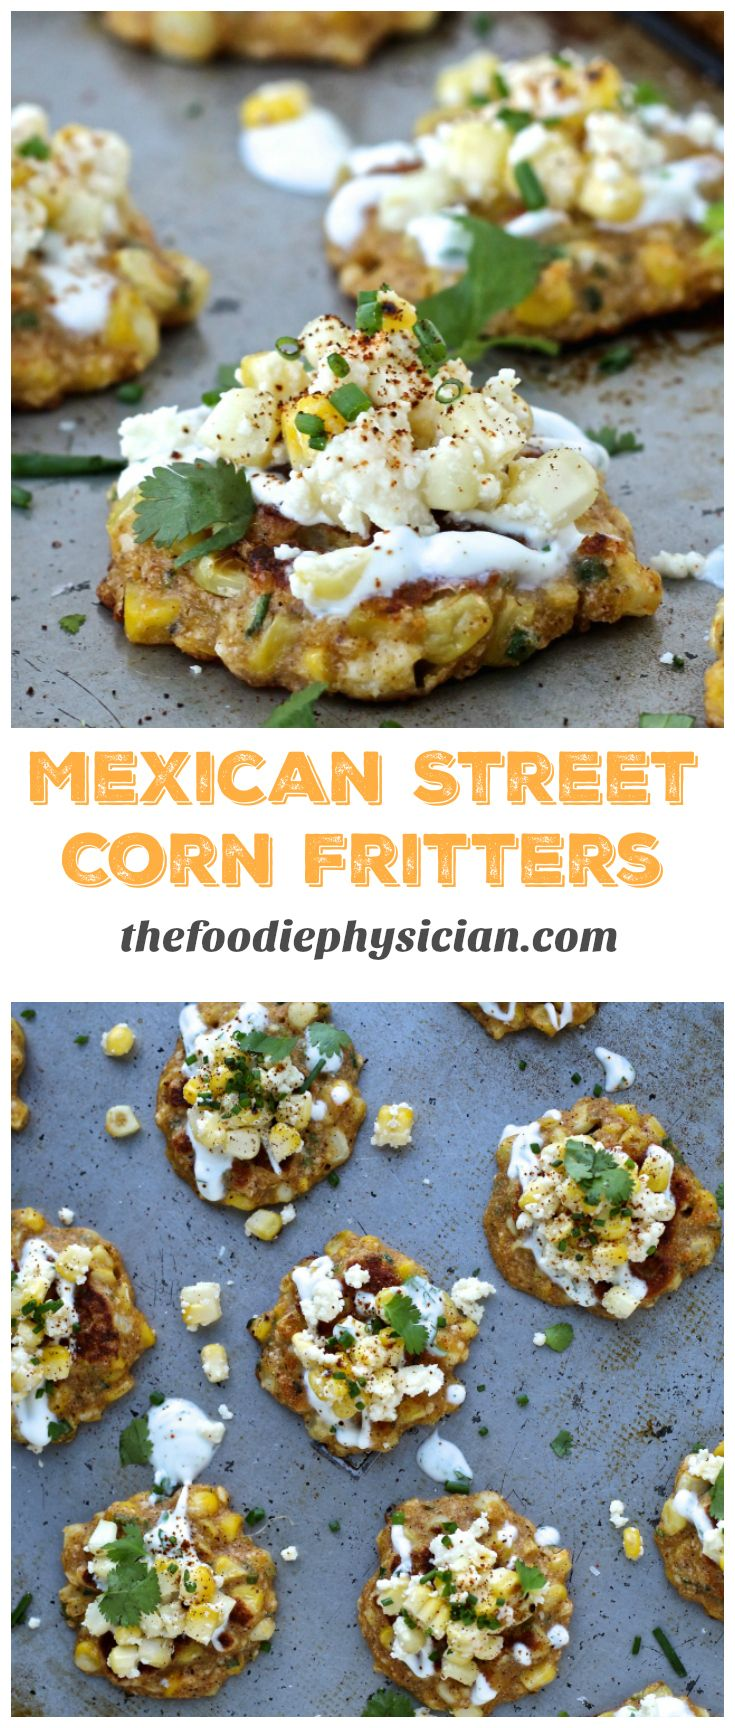 Mexican Street Corn Fritters #mexicanstreetcorn